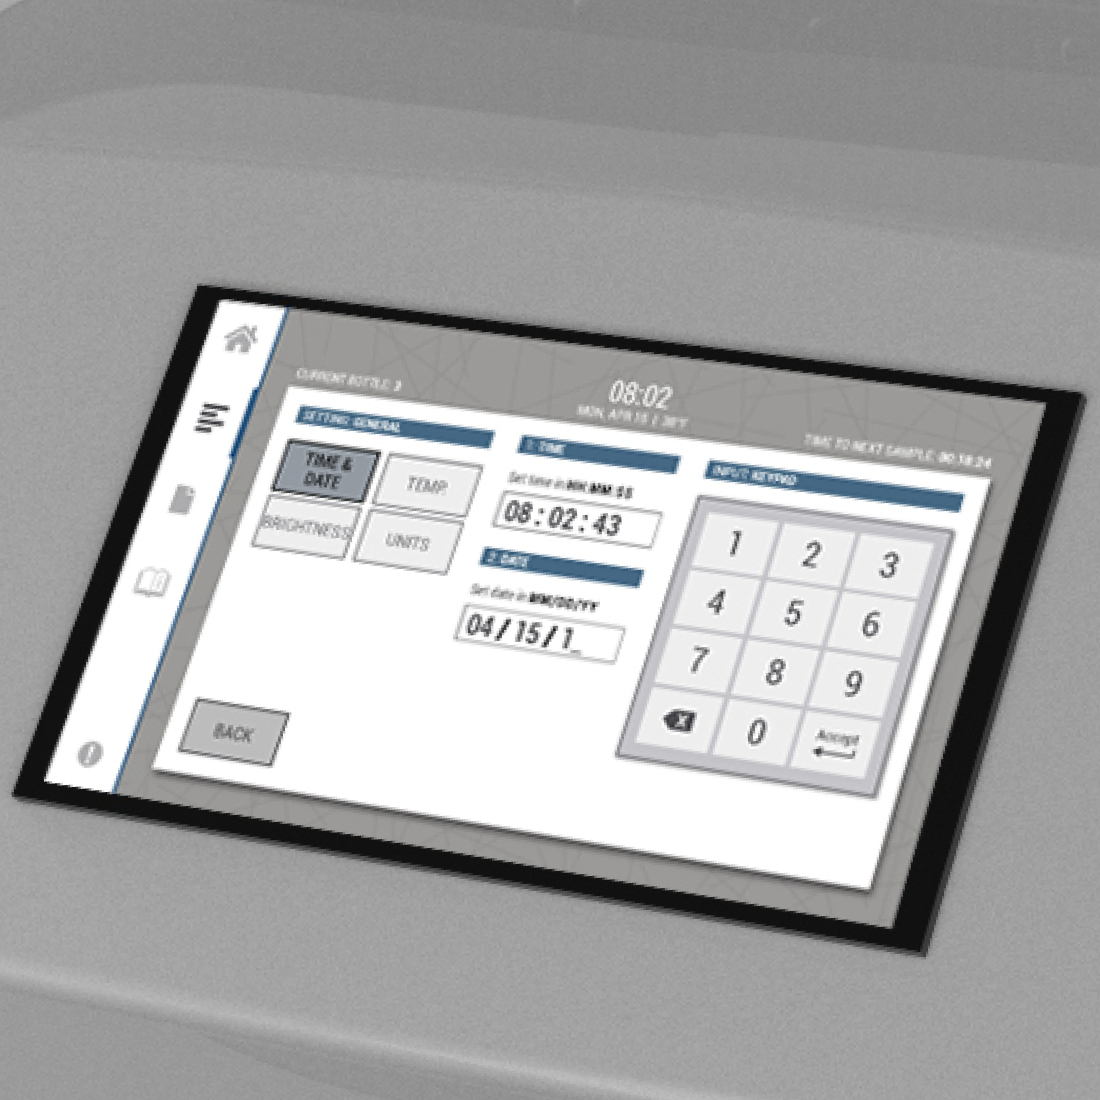 Control Panel-Wastewater sampling machine-The WAVE